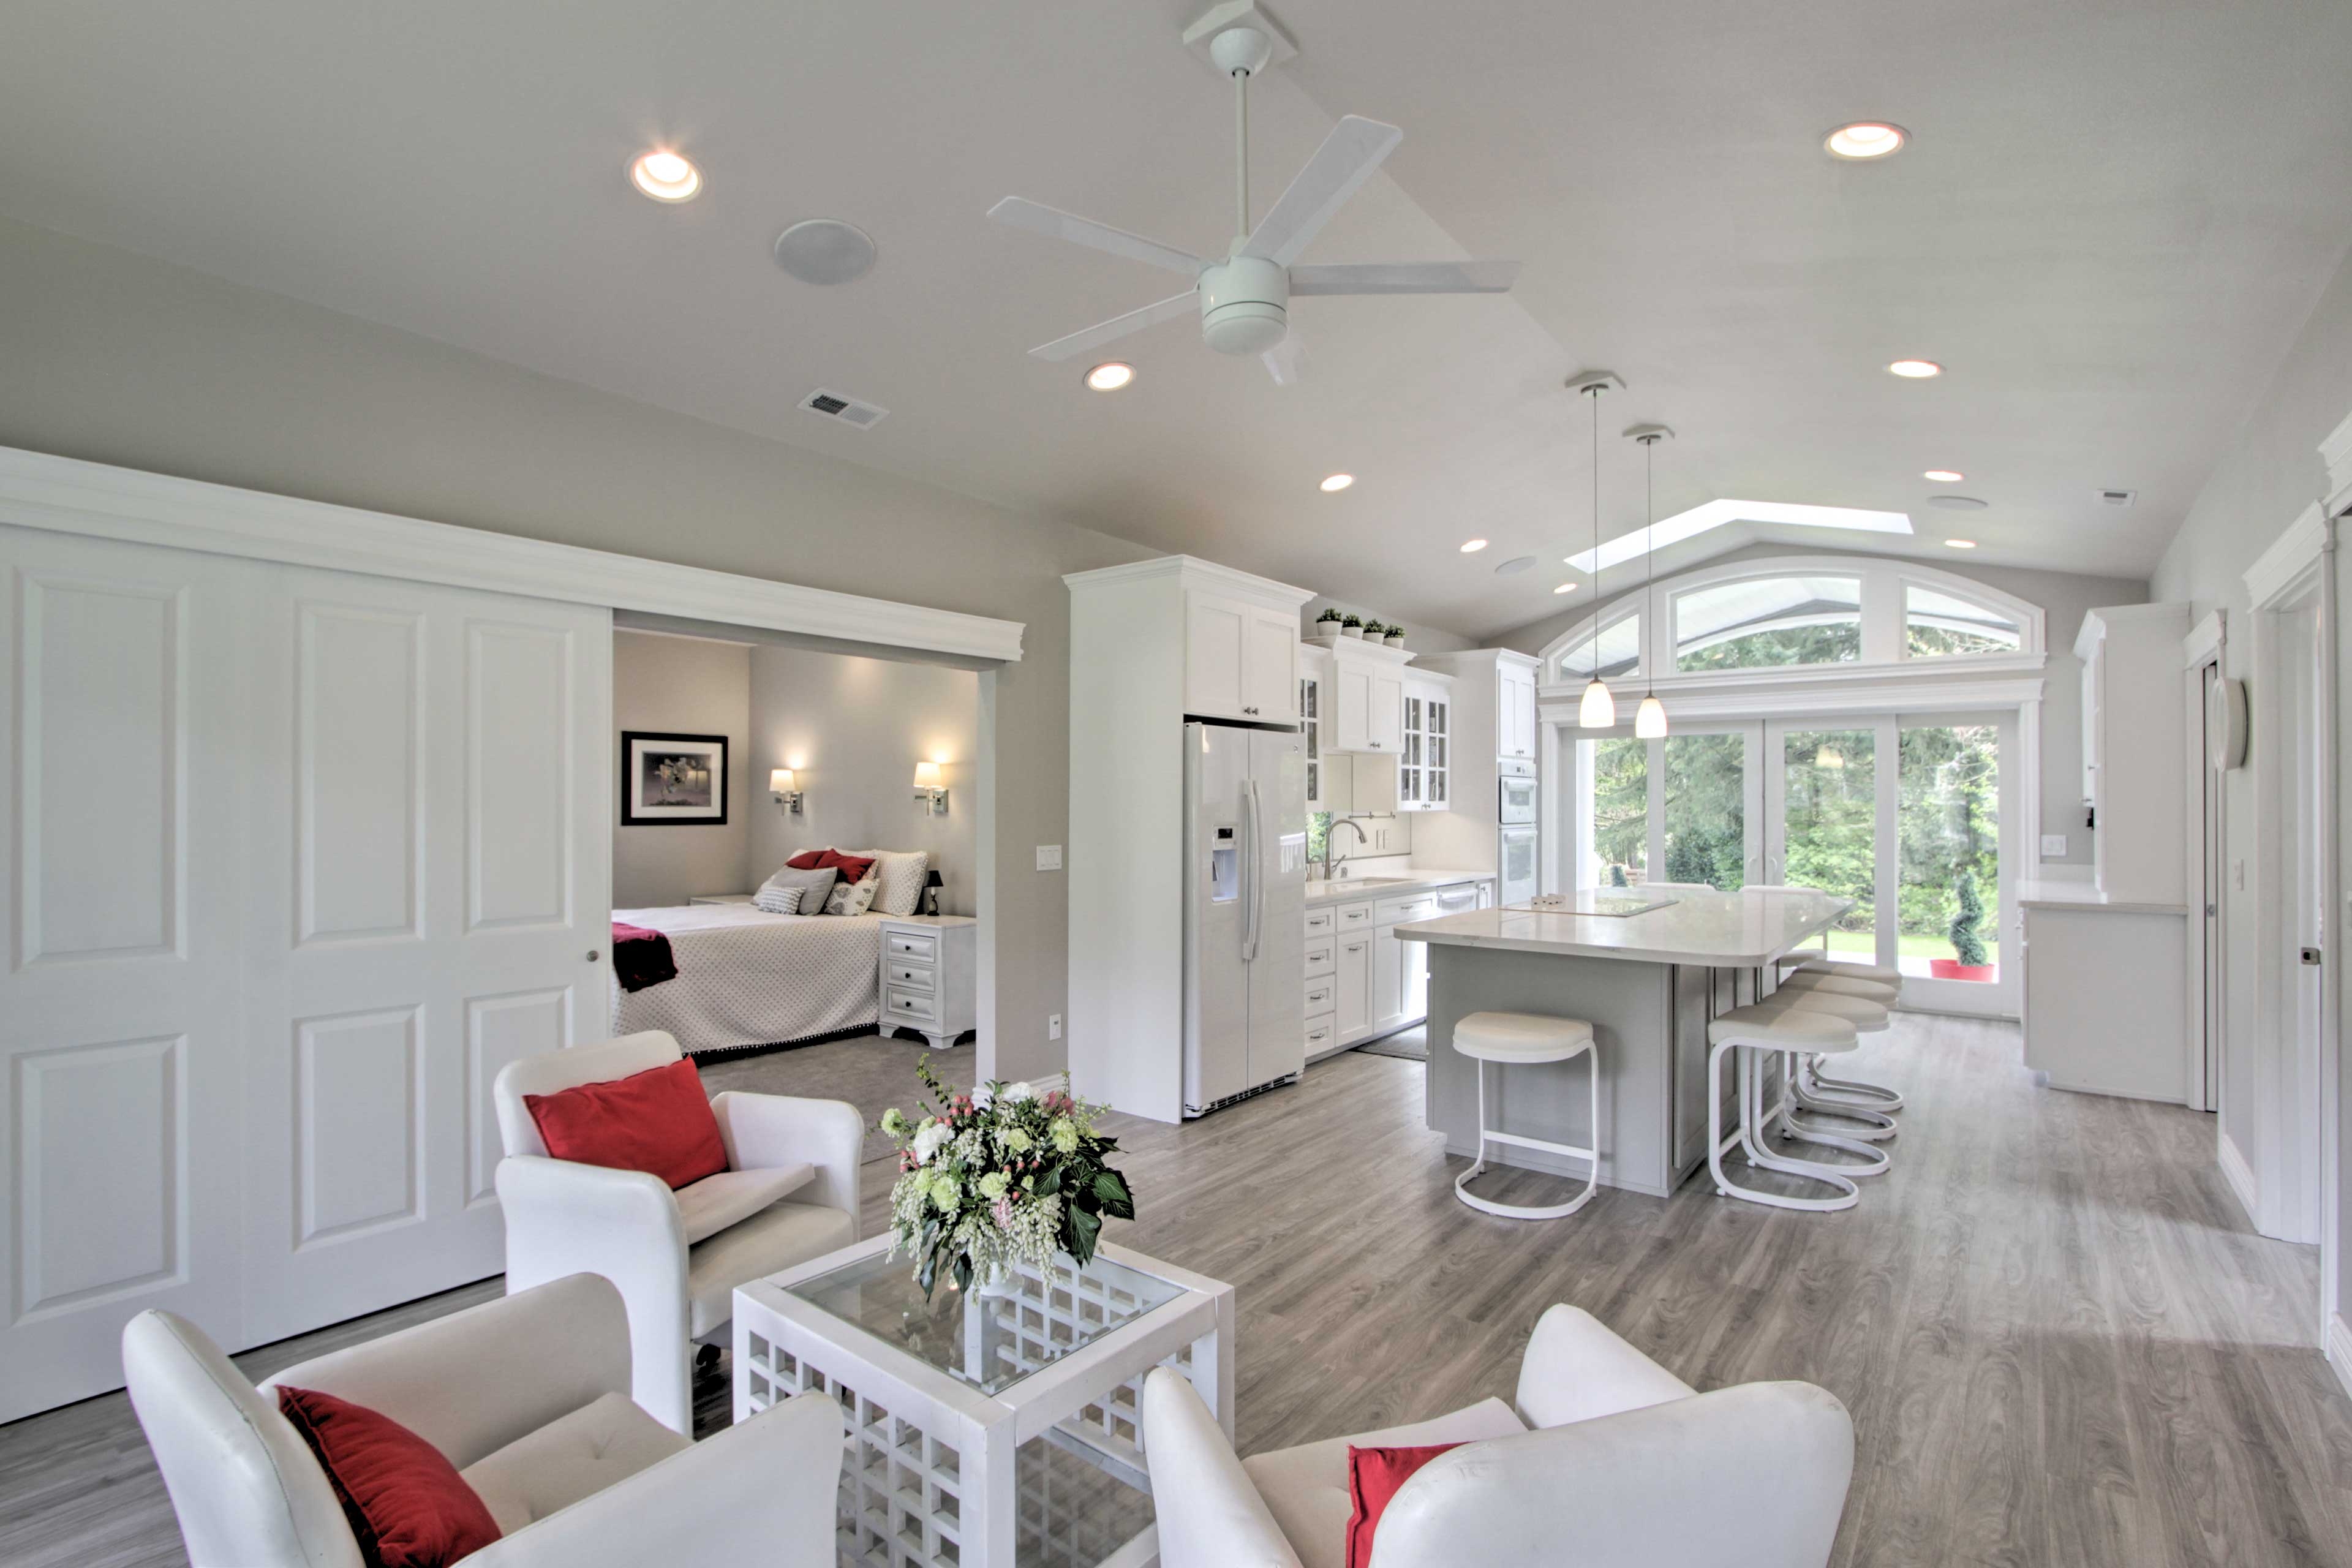 The open-concept layout is ideal for close friends or a family.